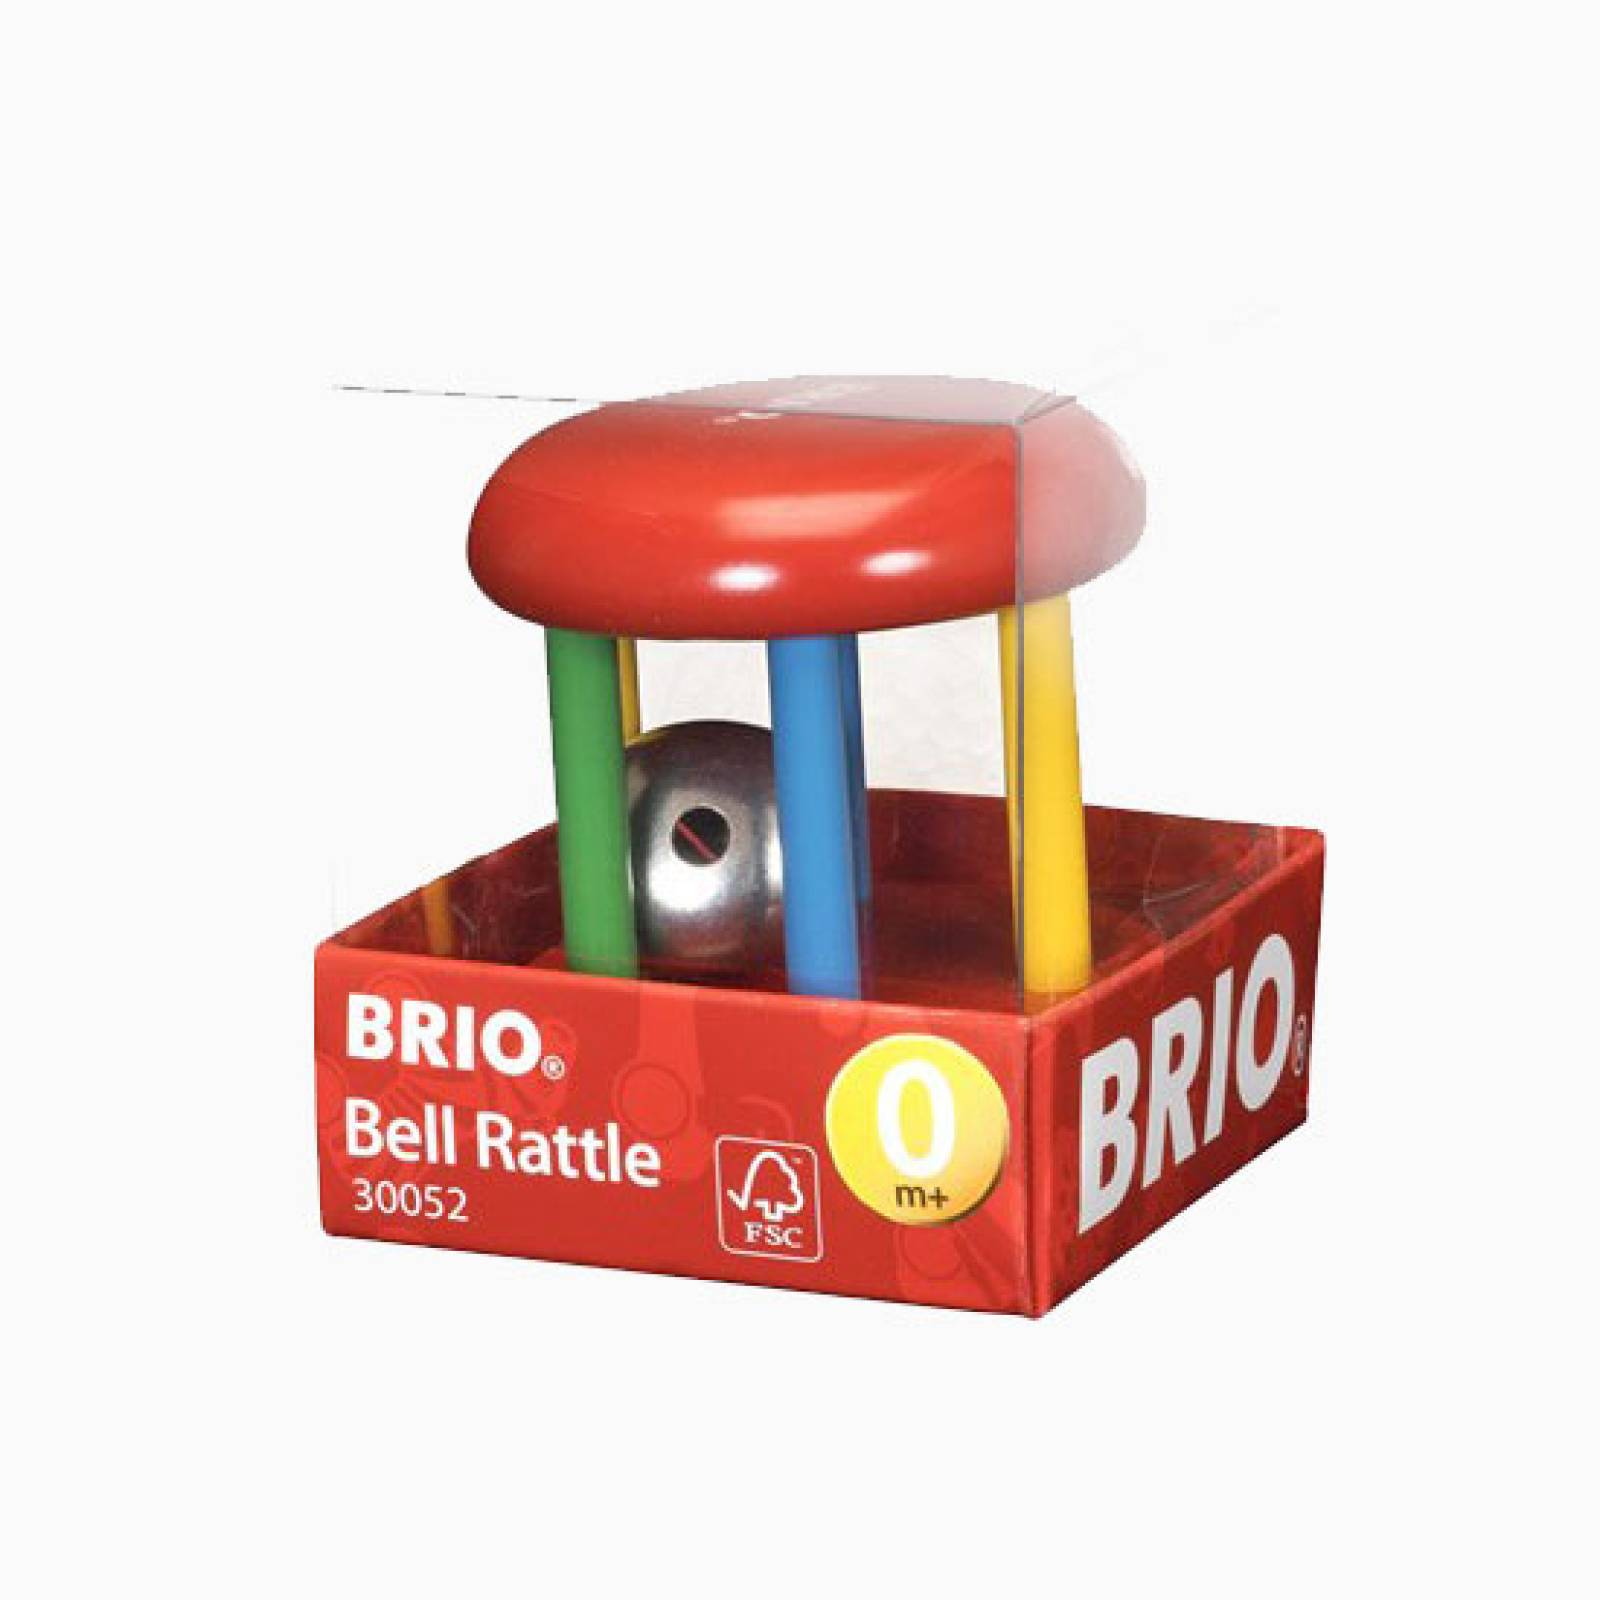 Wooden Bell Rattle By BRIO 1+ thumbnails